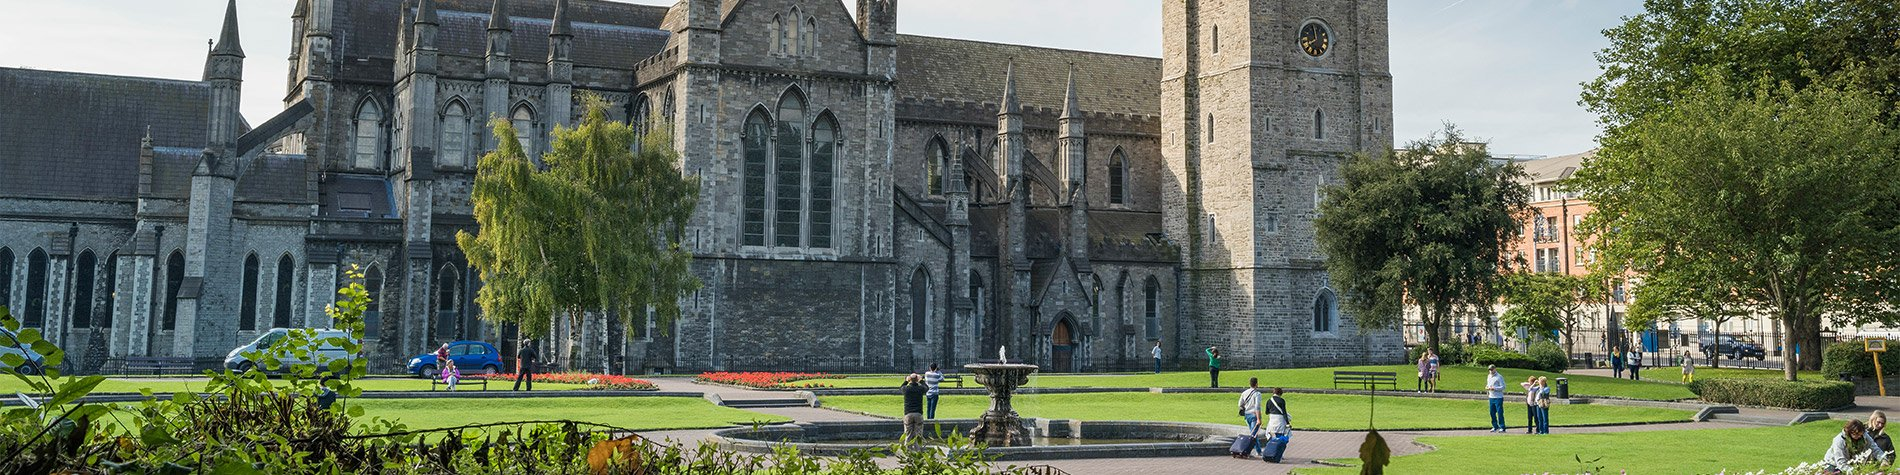 St. Patrick's Cathedral on Dublin's Christian Legacy Tour